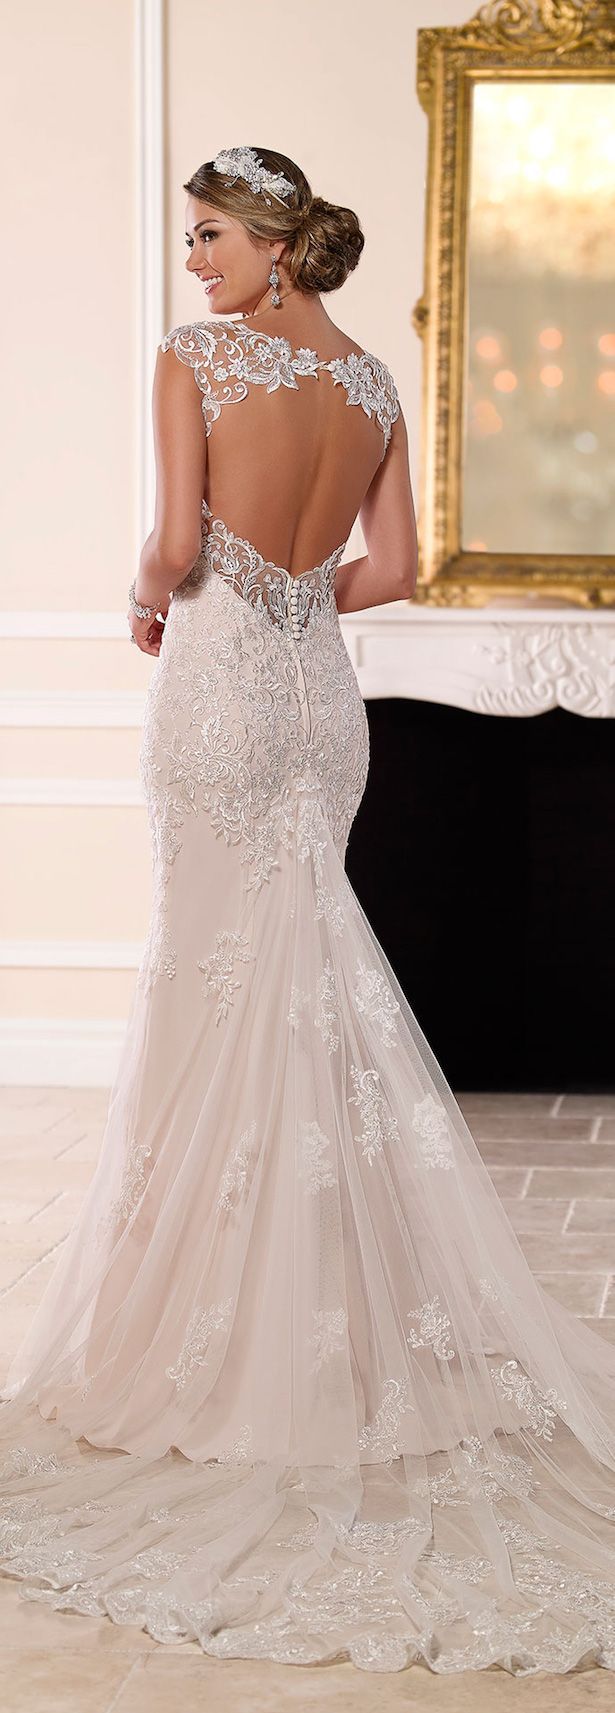 Wedding Stella York Wedding Dresses 17 best ideas about stella york on pinterest wedding dresses nyc spring 2016 dresseswedding